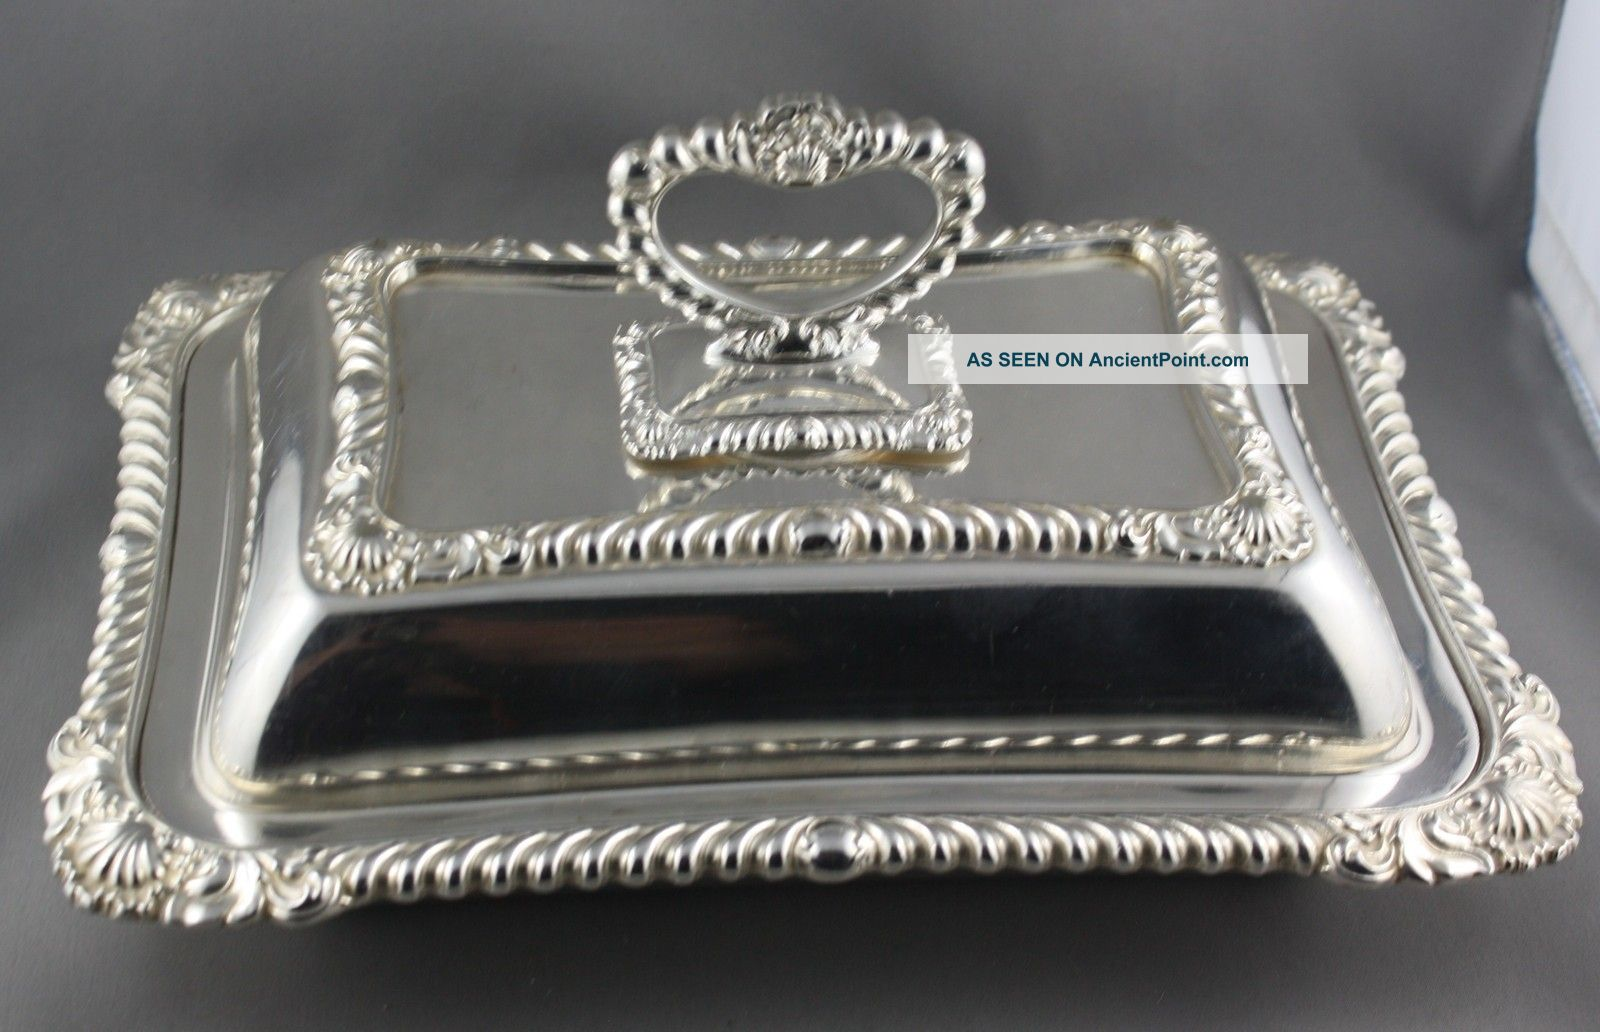 Vintage Silver Plated & Handled Serving Dish Made In England Dishes & Coasters photo